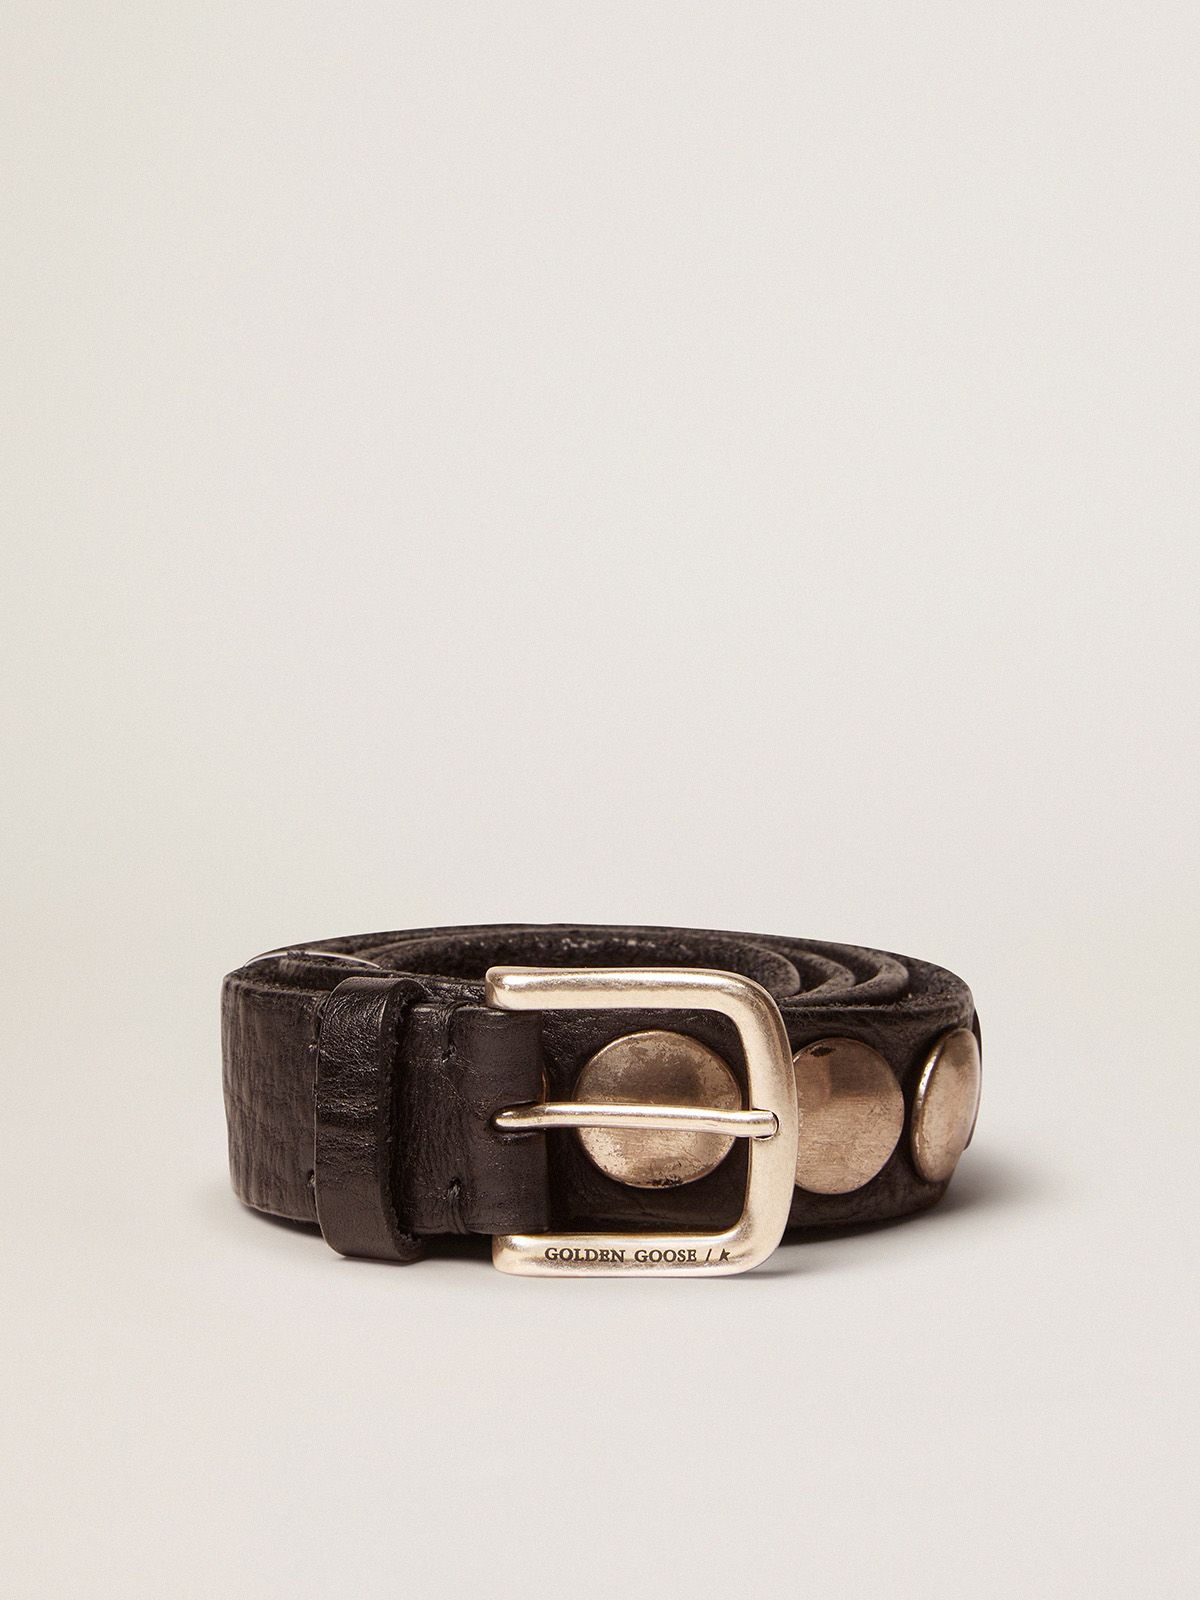 Golden Goose - Black Trinidad belt in washed leather with studs in